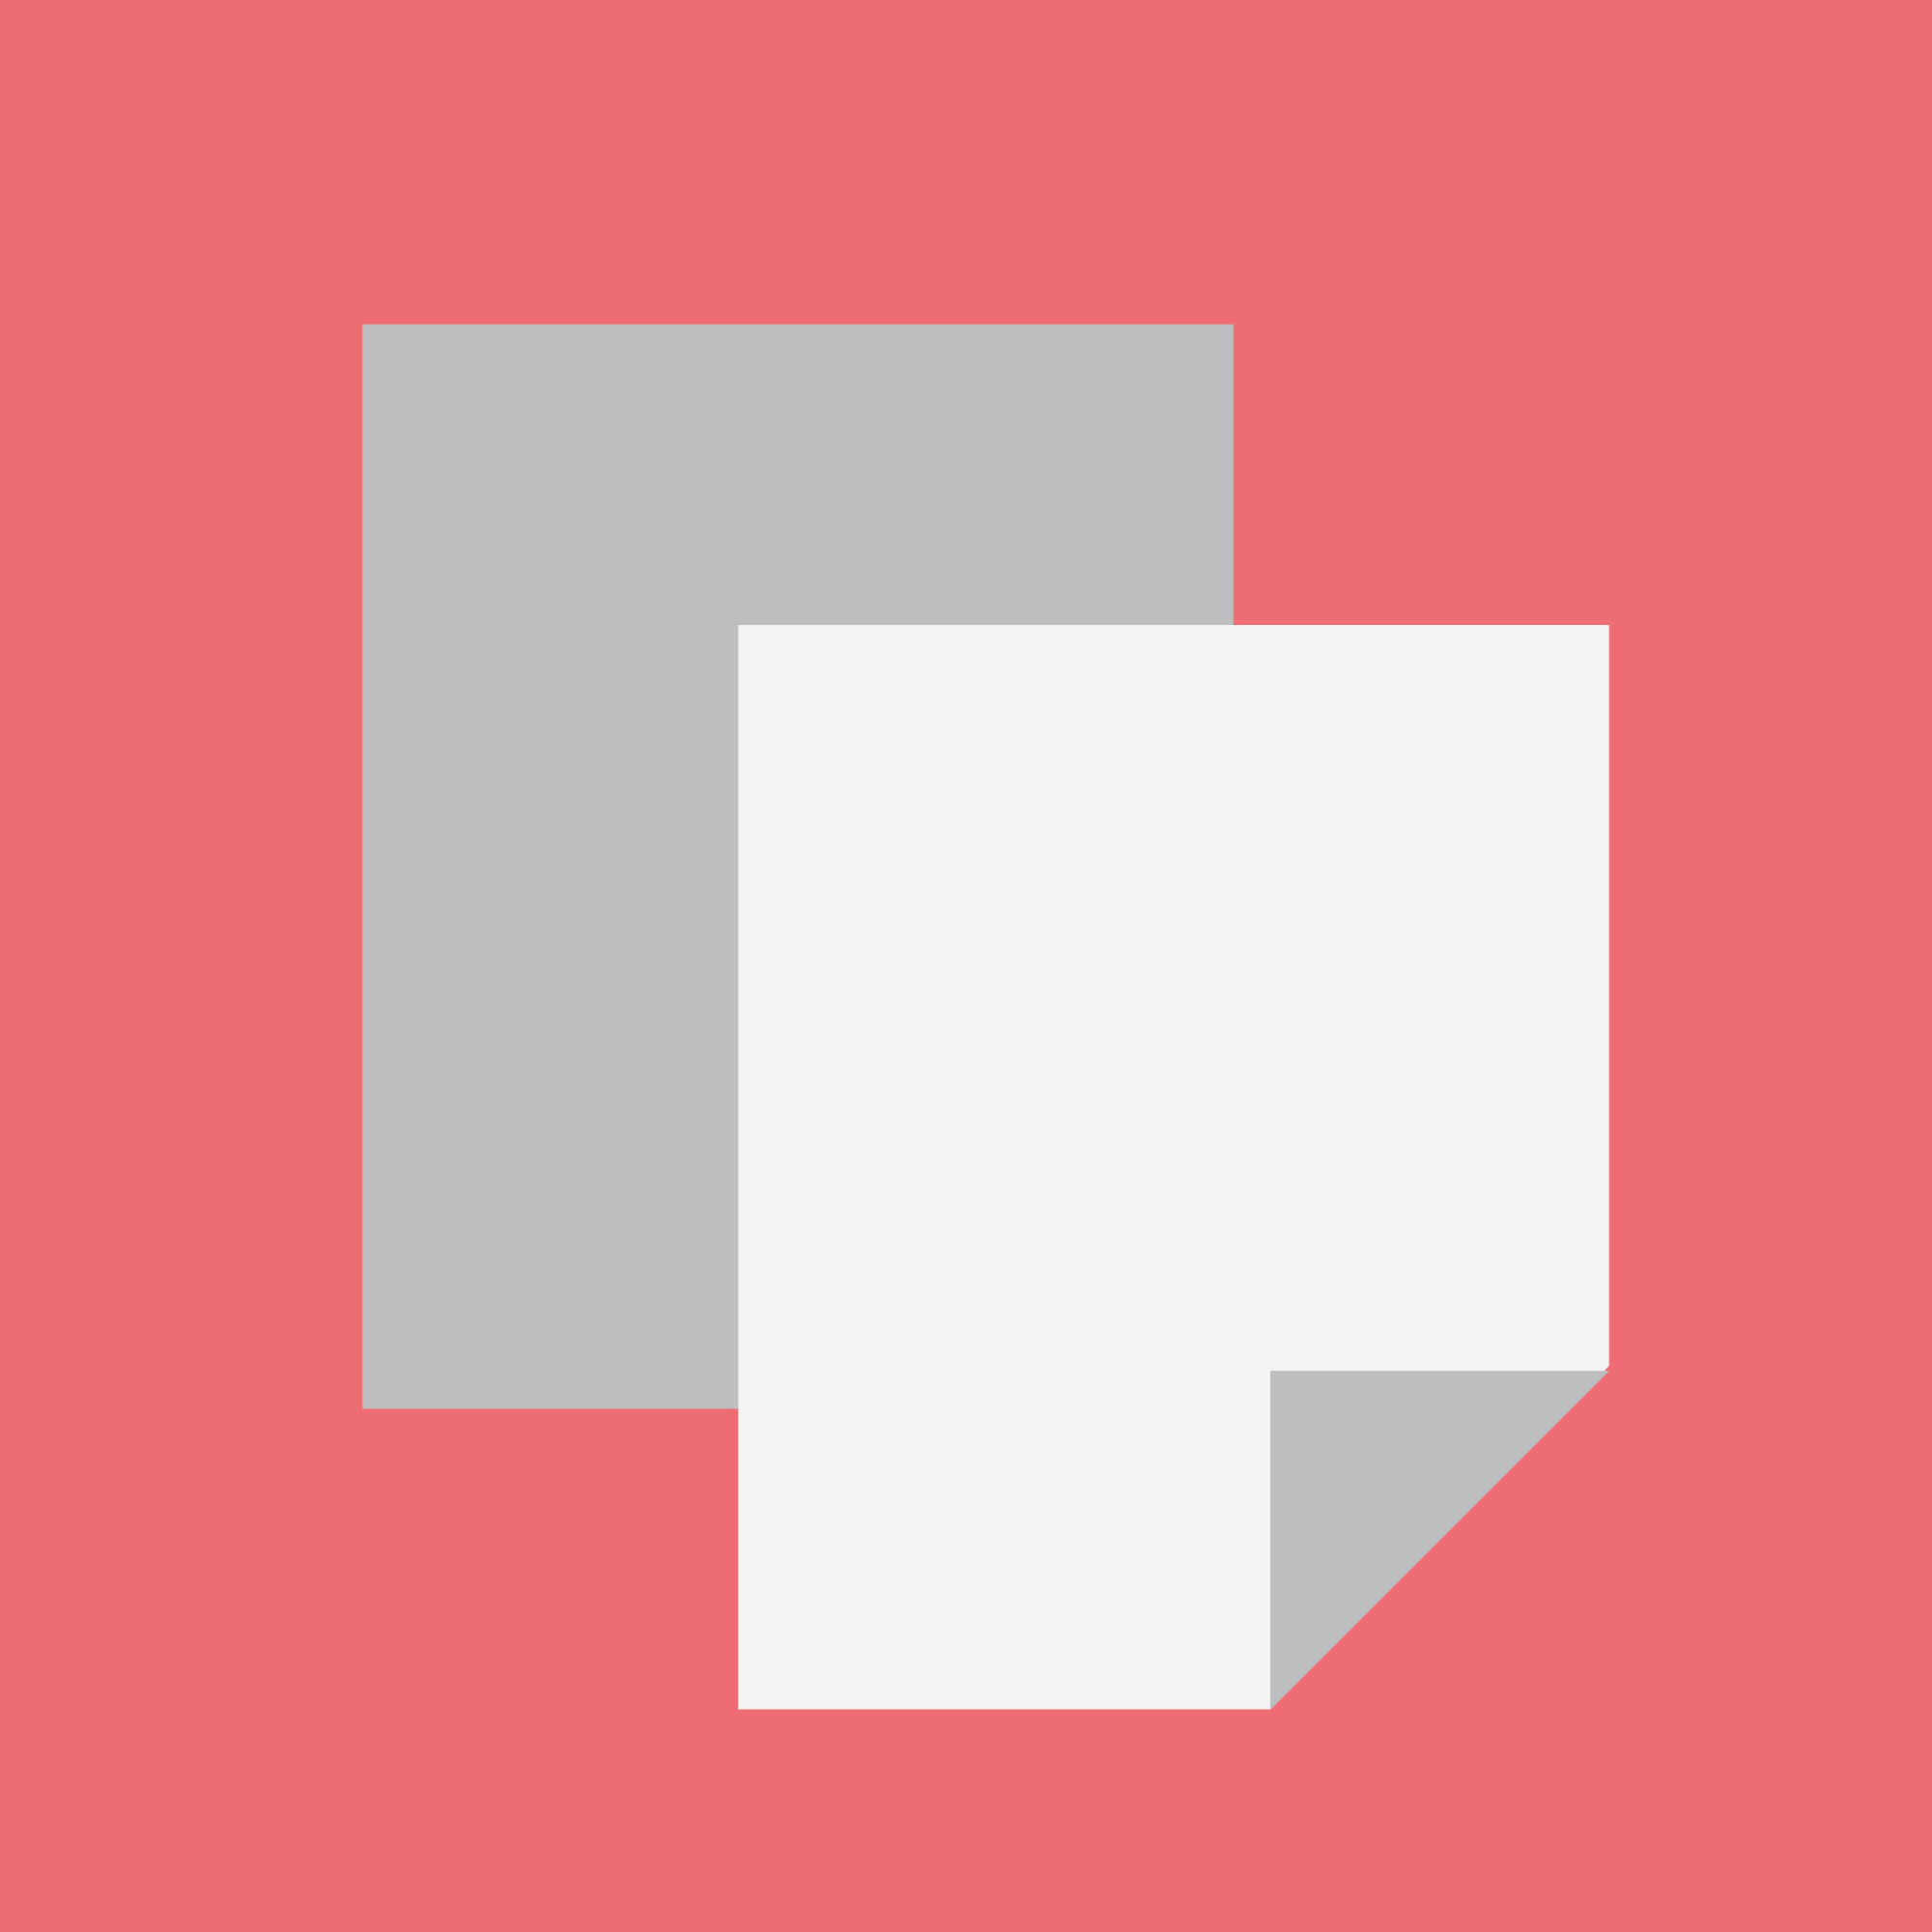 Materialize a material design css converting from for How to materialize